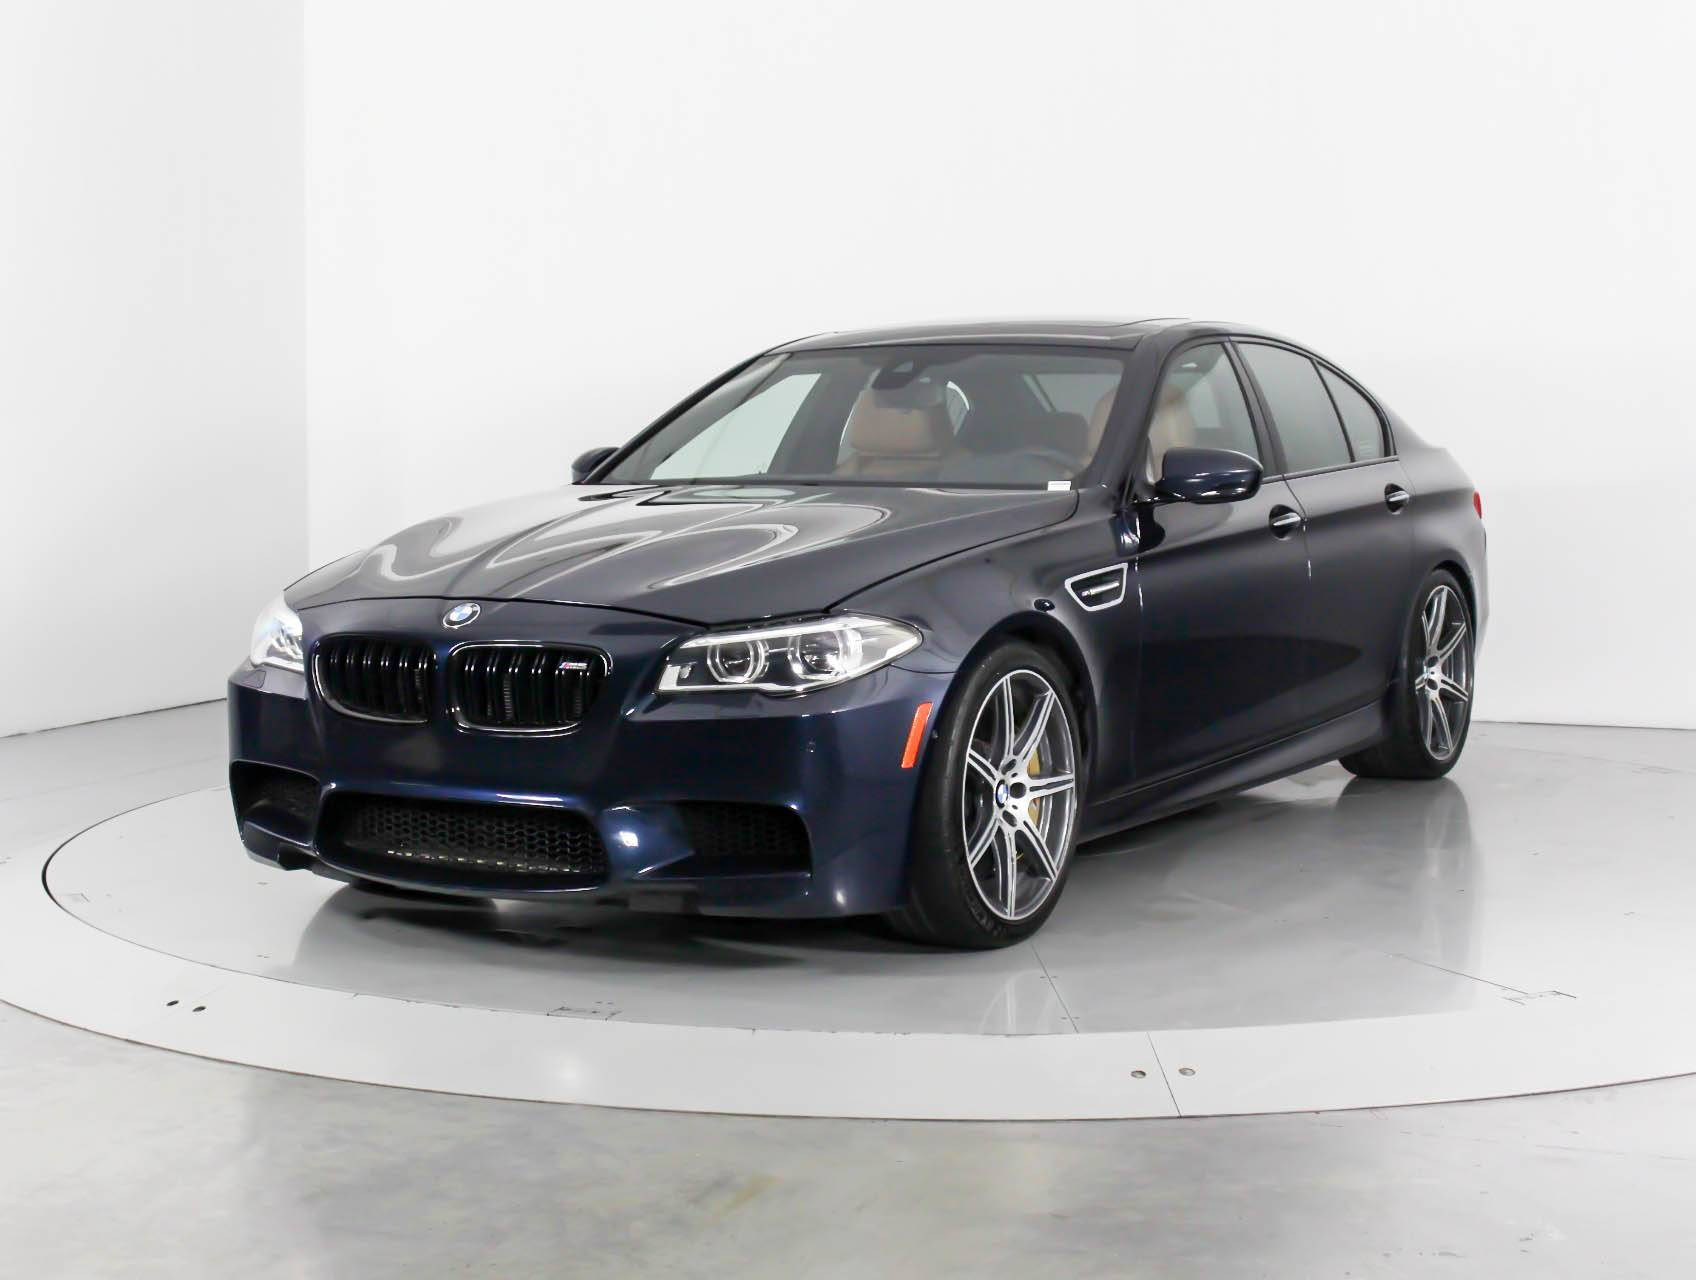 Used 2015 BMW M5 Competition Package Sedan for sale in WEST PALM, FL